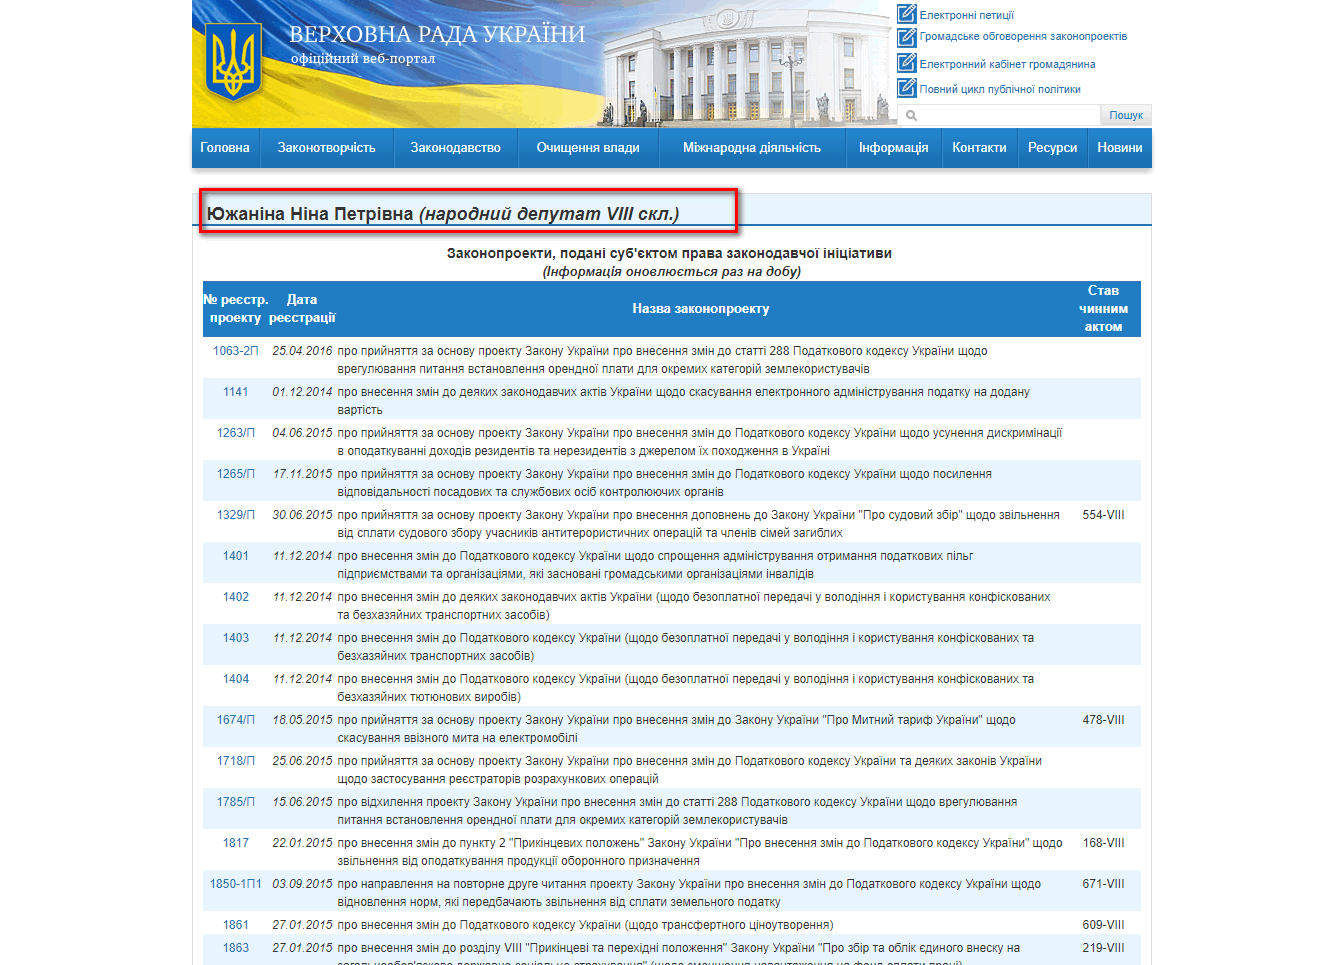 http://w1.c1.rada.gov.ua/pls/pt2/reports.dep2?PERSON=17980&SKL=9